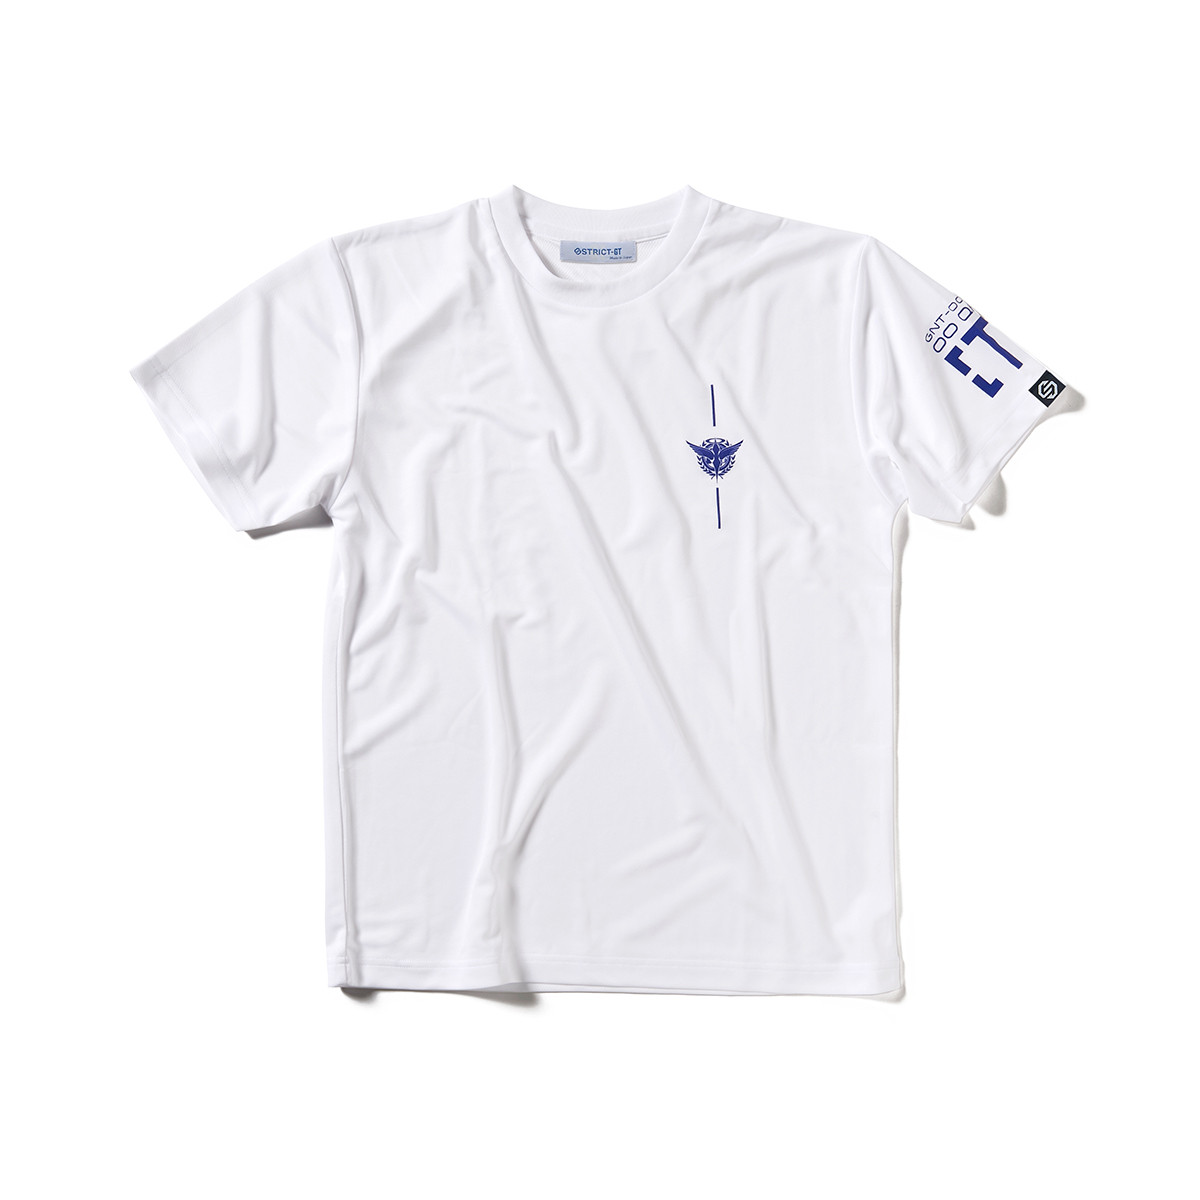 00 Qan[T] Quick-Drying T-shirt—Mobile Suit Gundam 00 the Movie -A wakening of the Trailblazer-/STRICT-G Collaboration